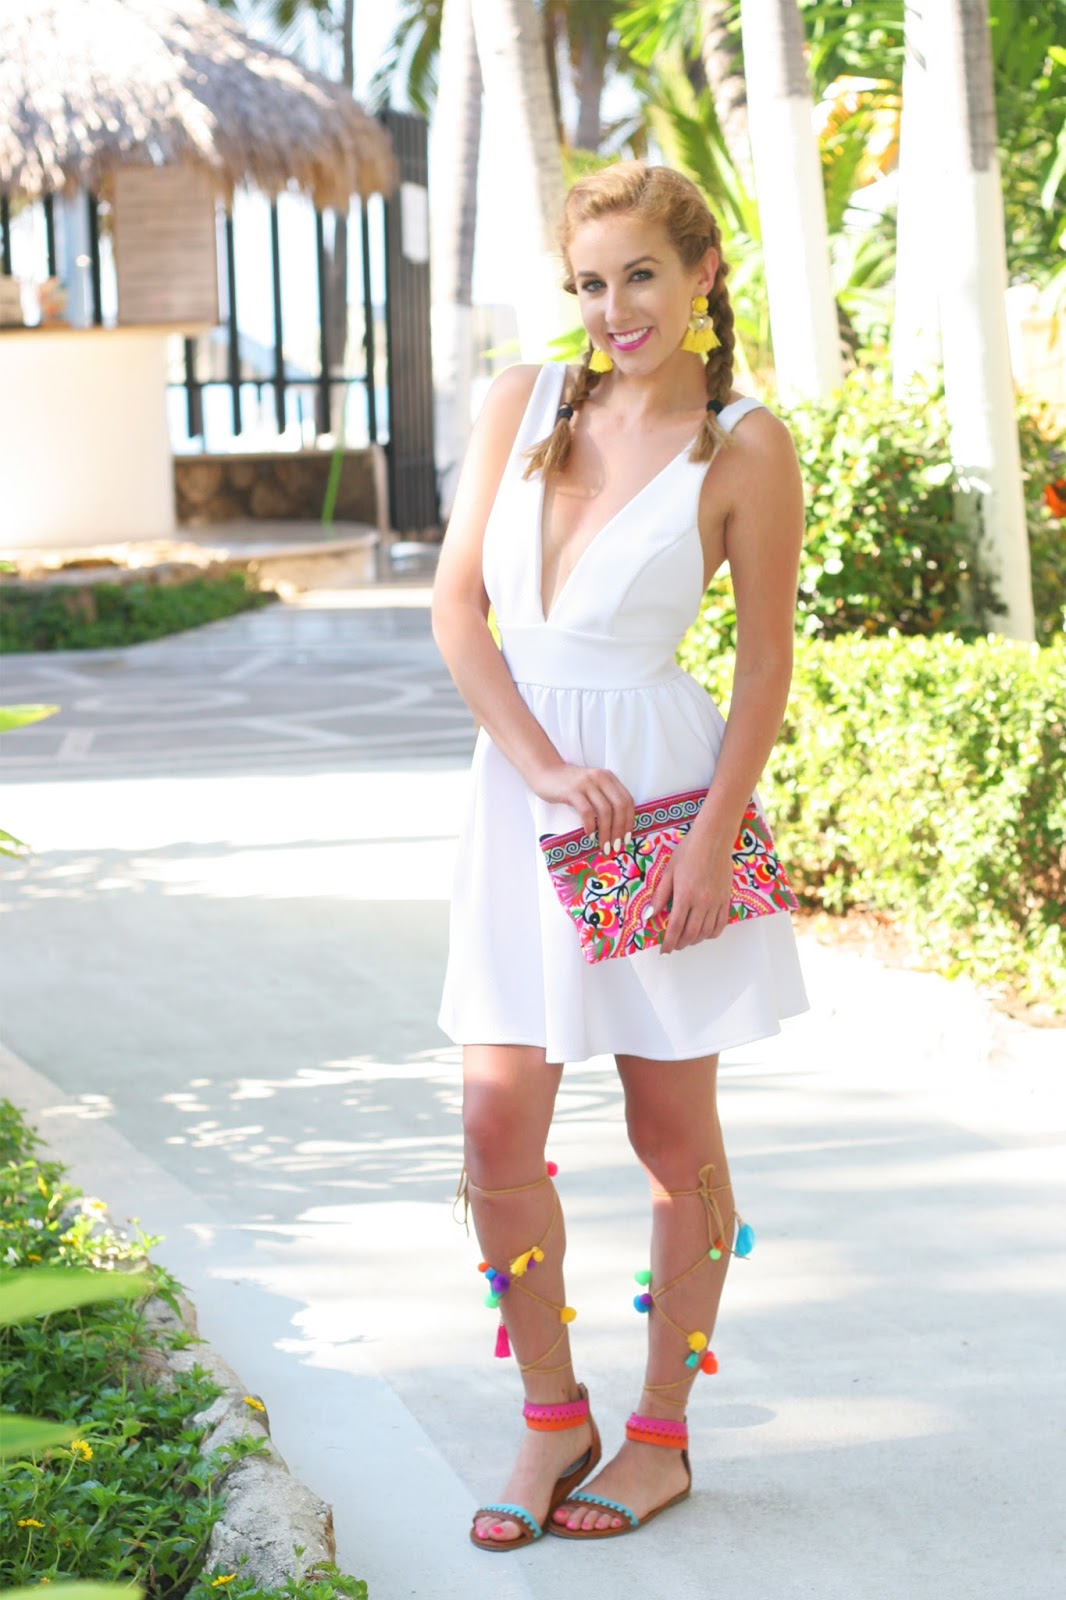 Colorful-summer-street-style-summer-vacation-little-white-dress